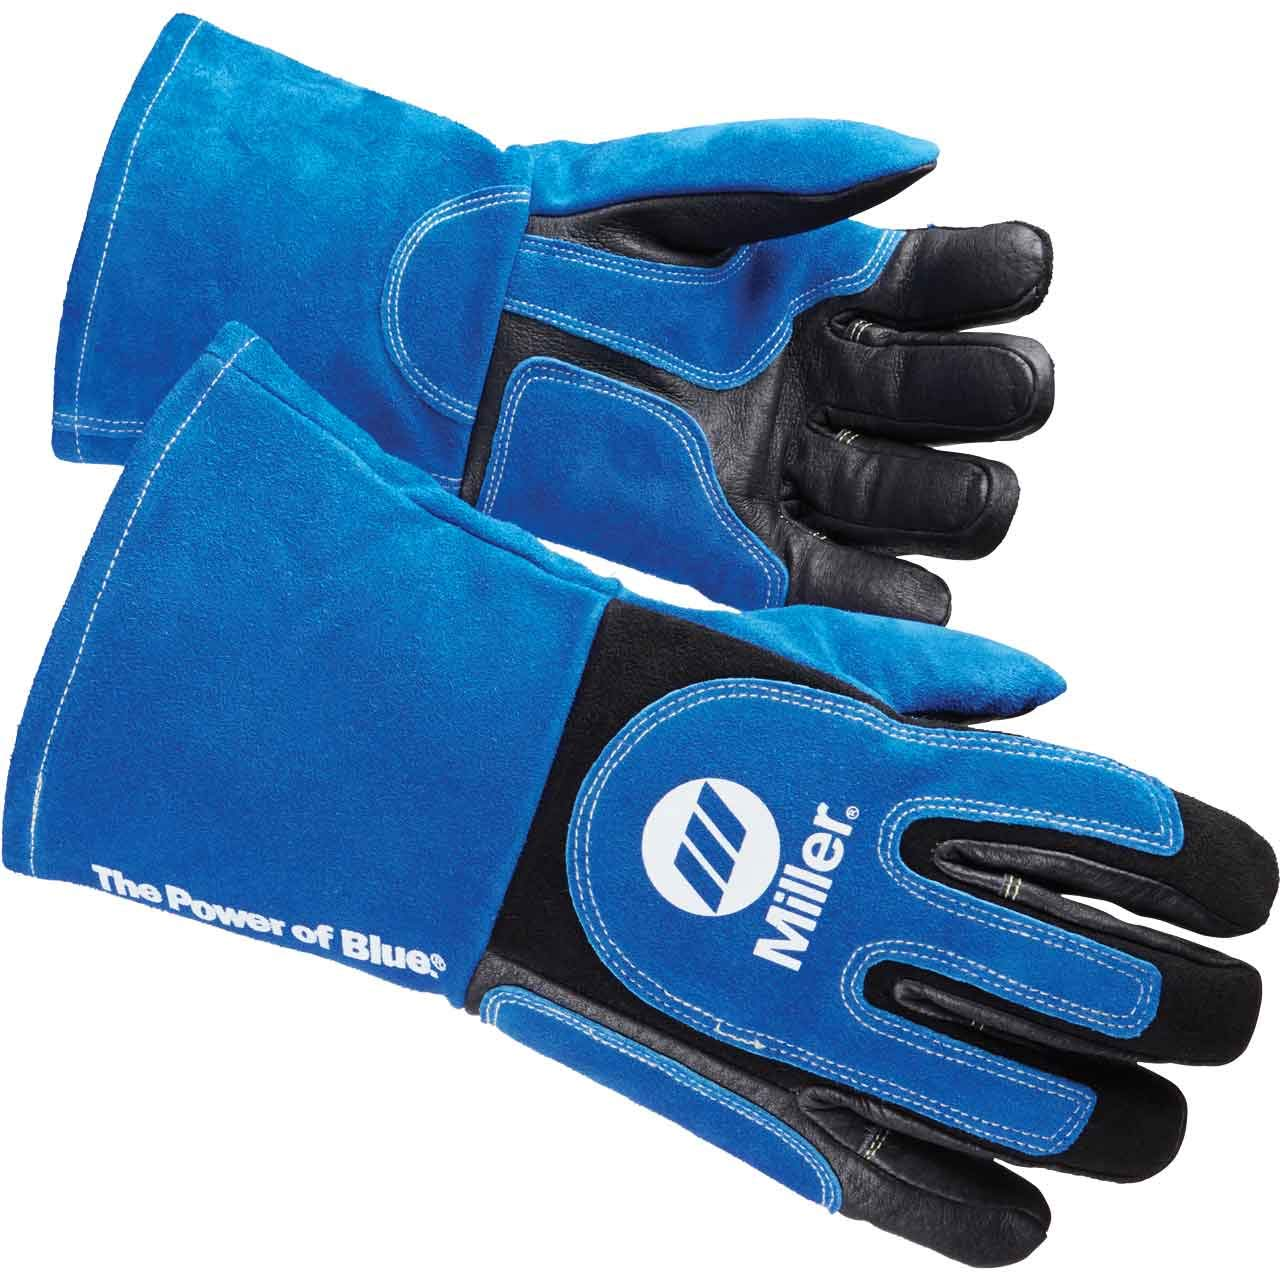 Miller 269615 Heavy Duty MIG/Stick Welding Glove, 2X-Large